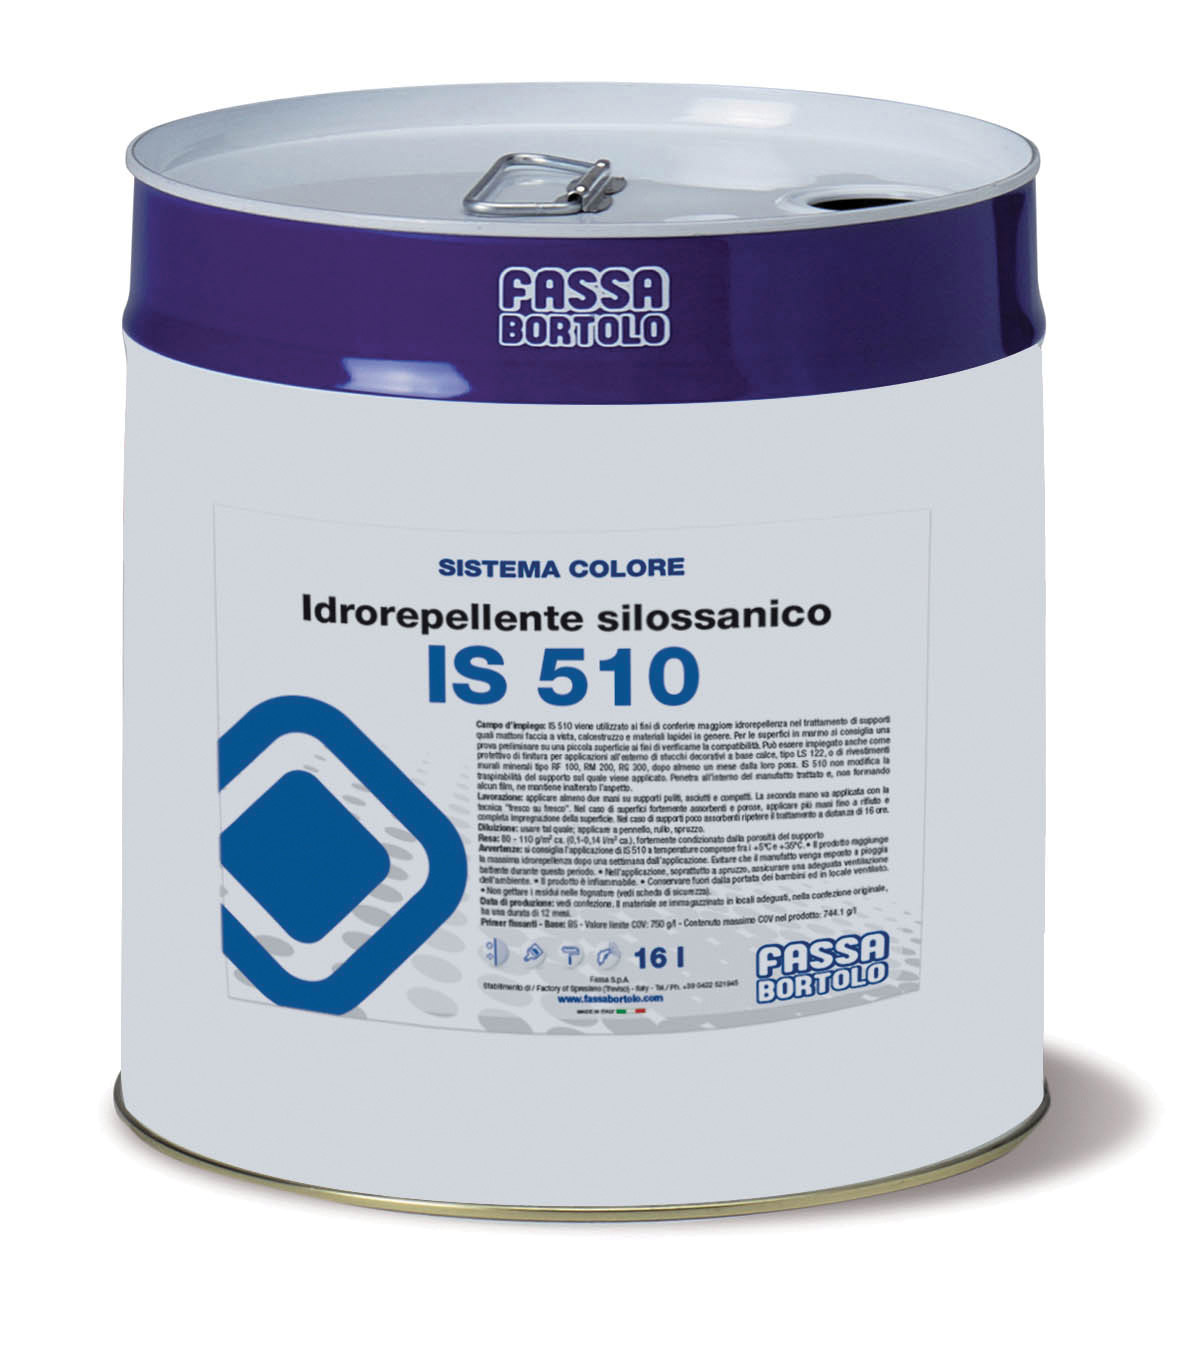 IS 510: Idrorepellente silossanico